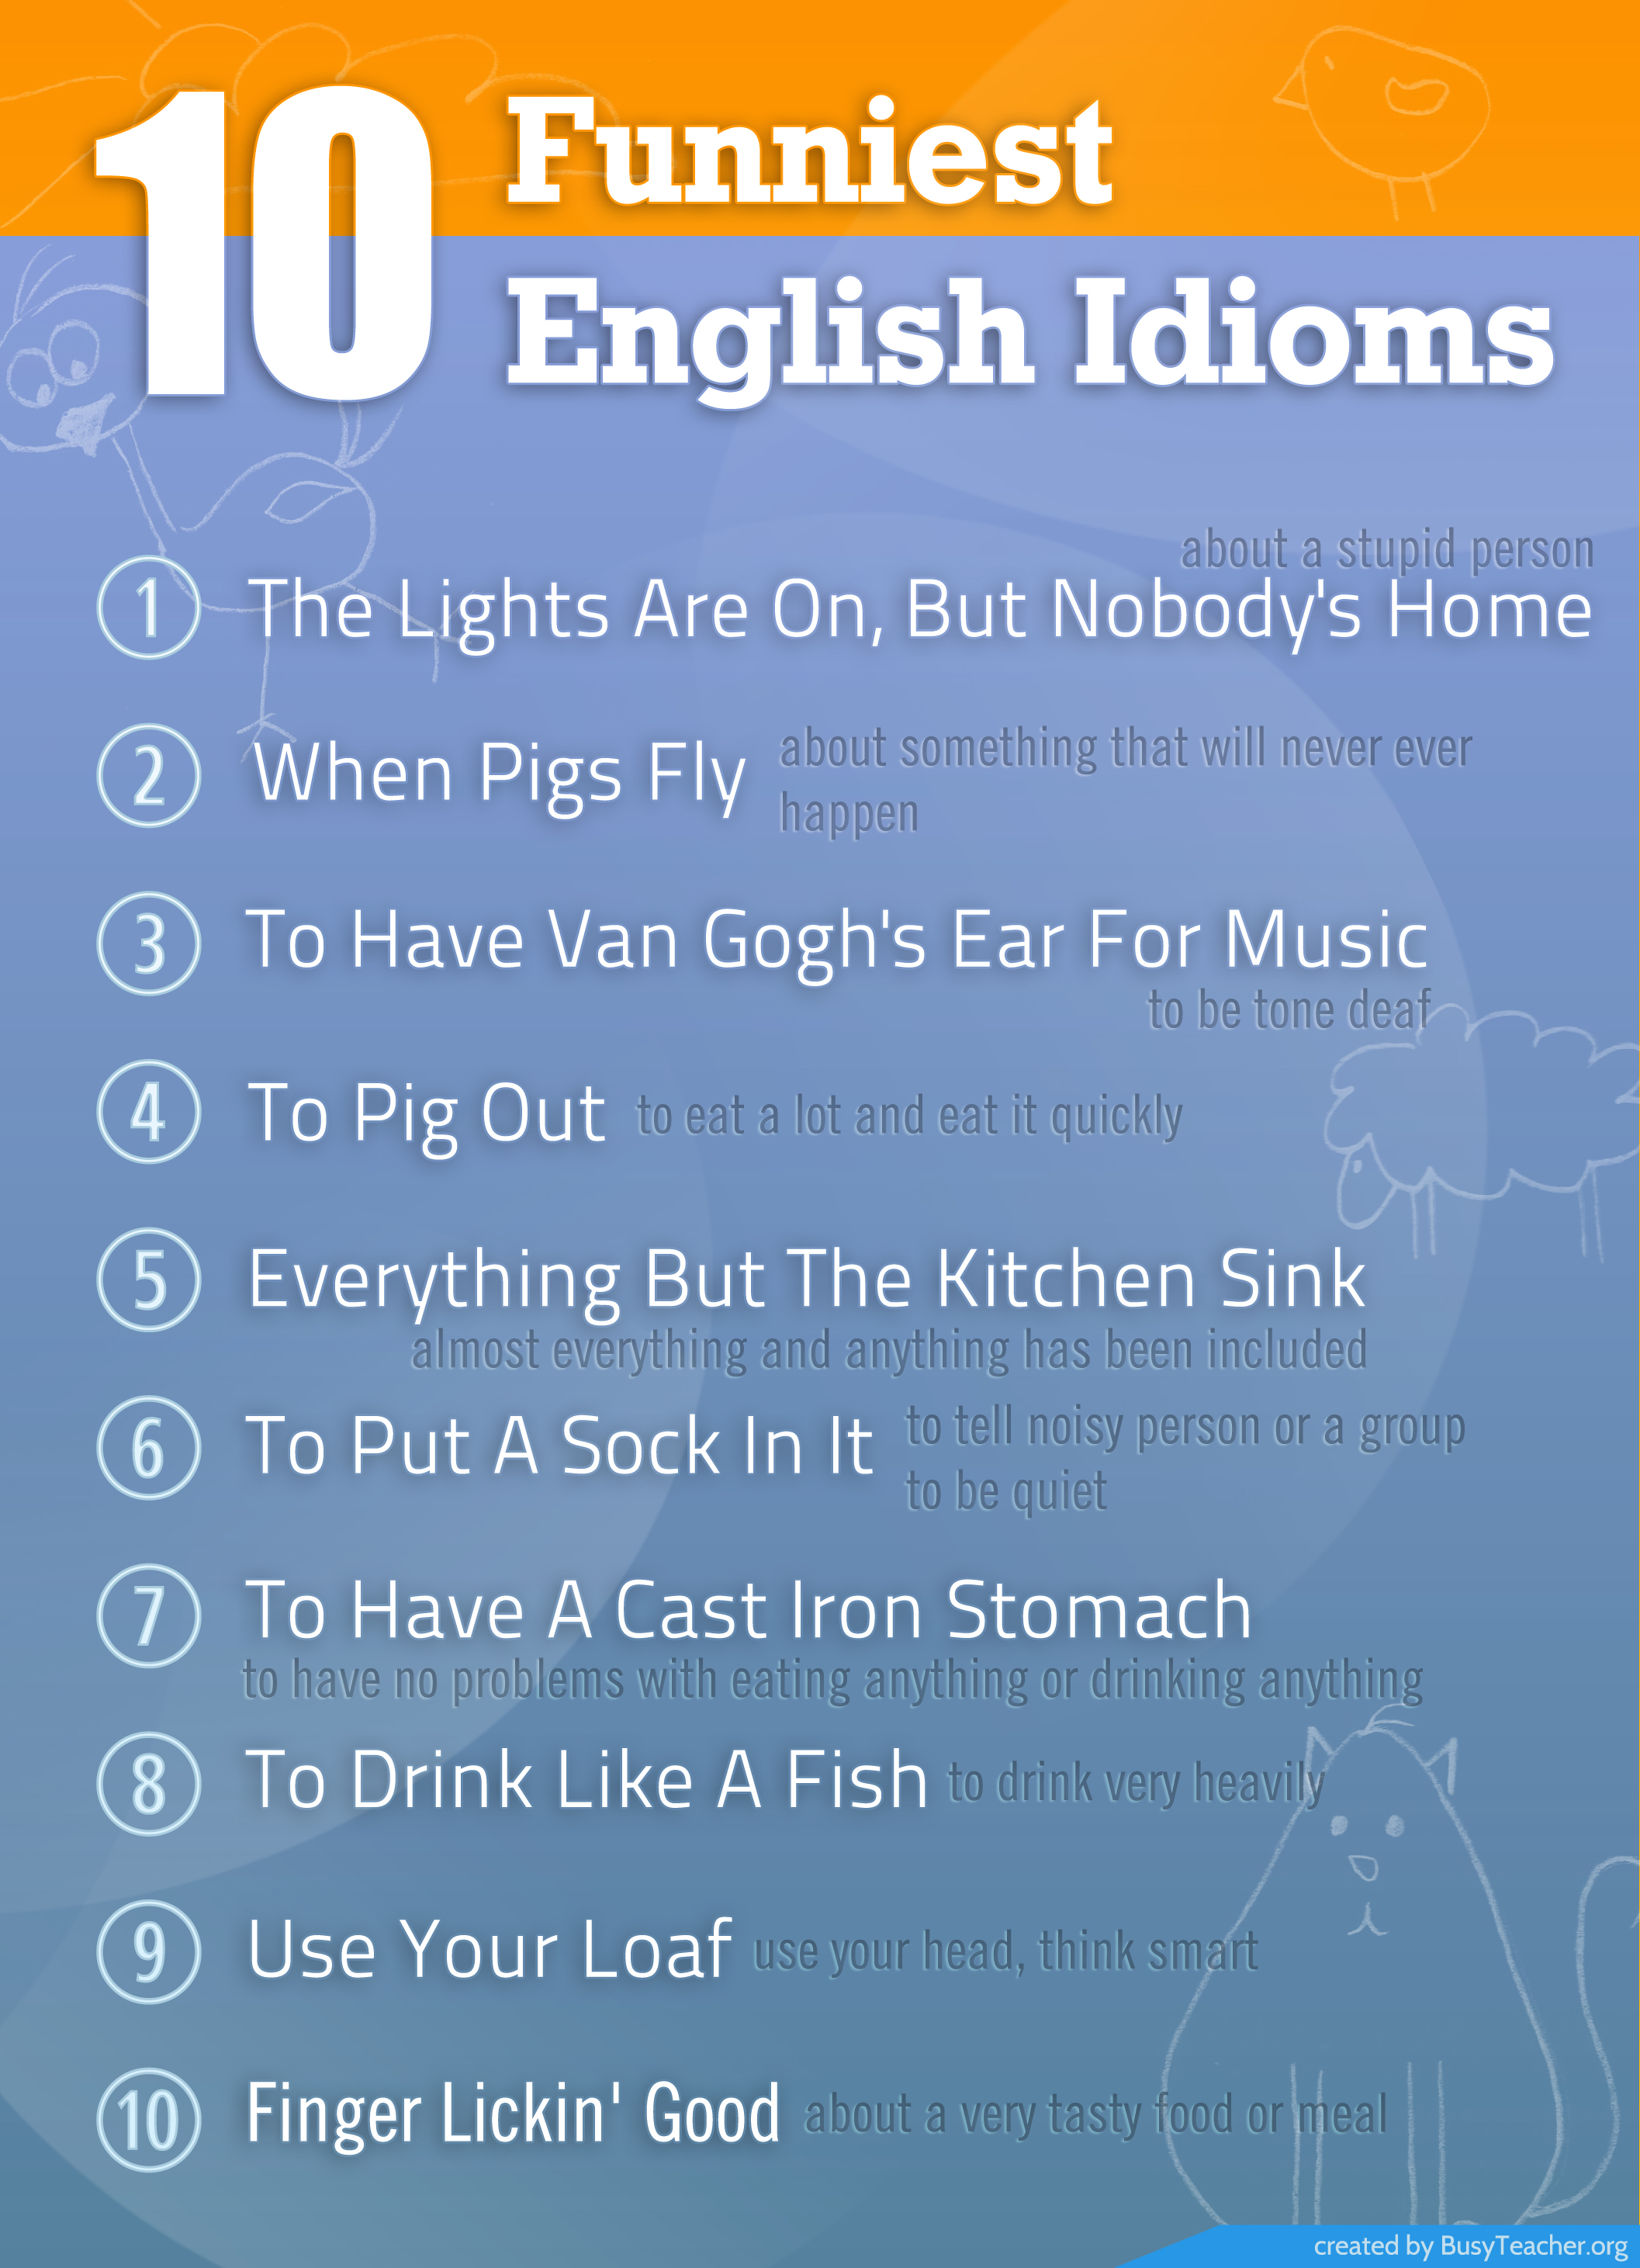 10 Funniest English Idioms Poster